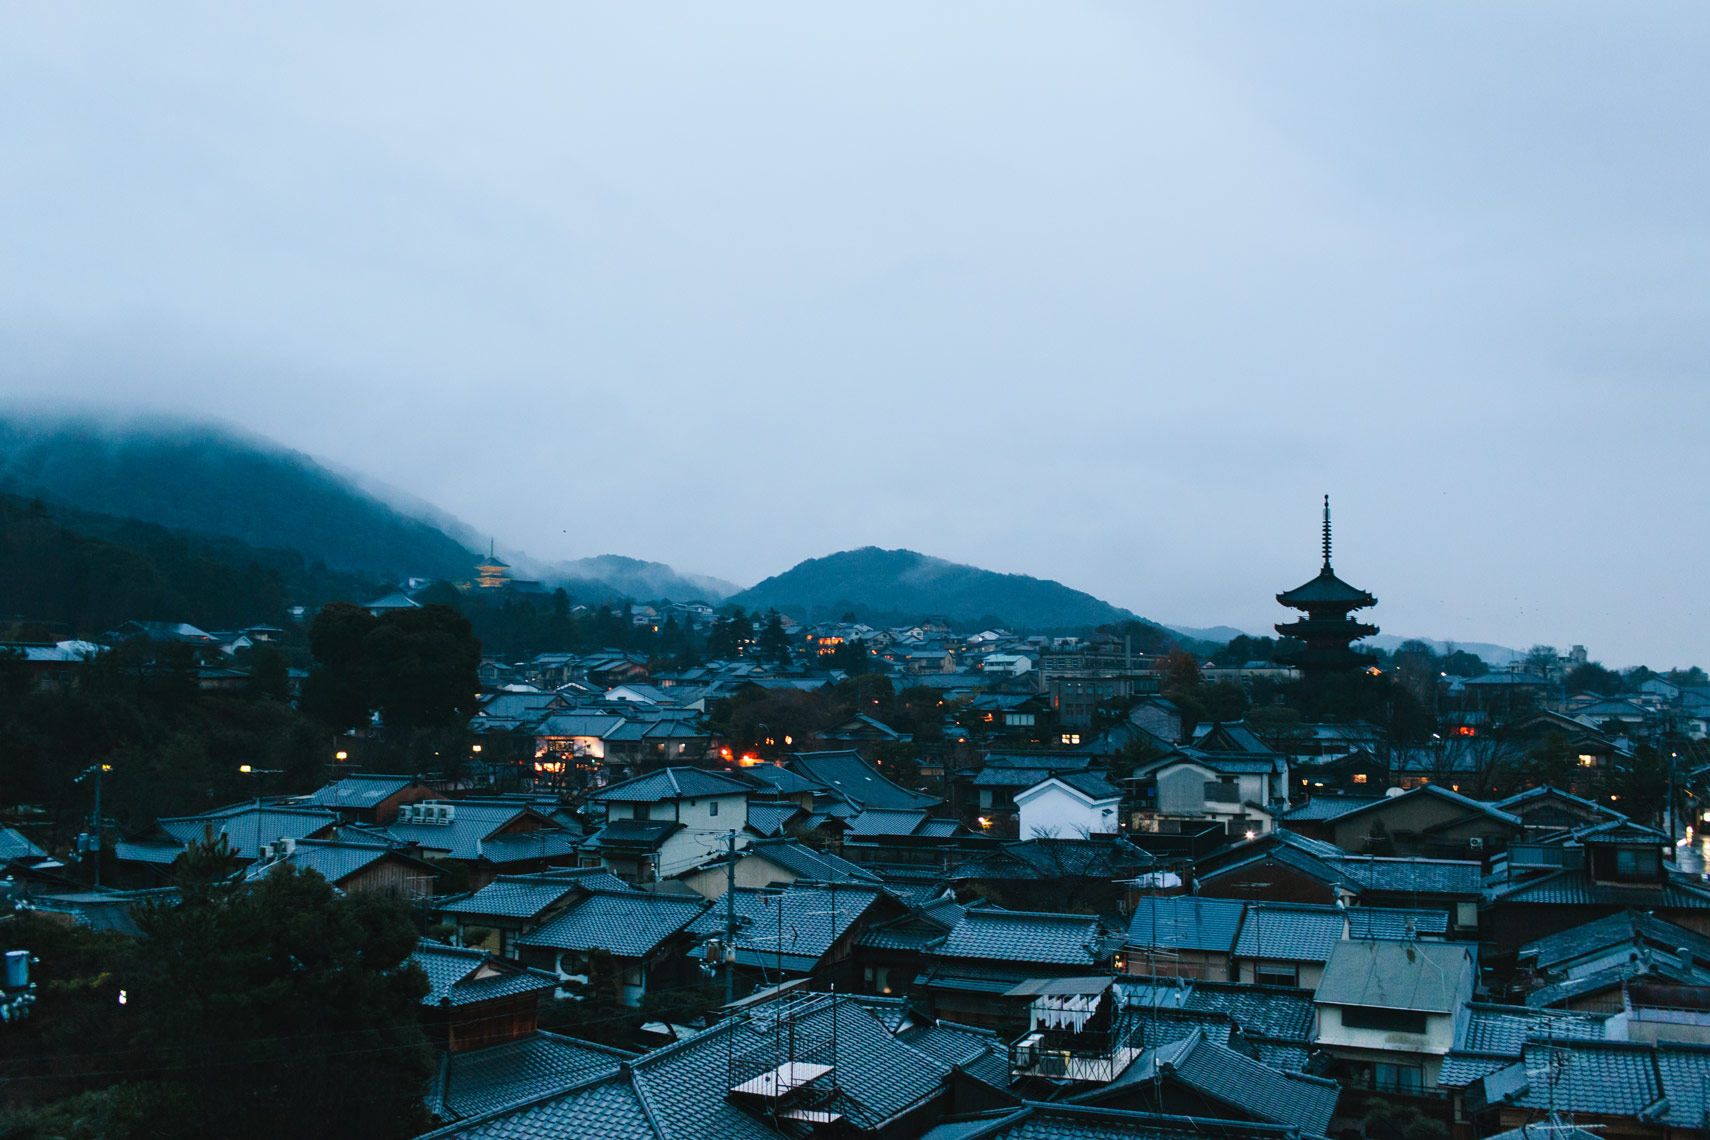 Kristin Teig Photography | Kyoto at dusk - Kristin Teig